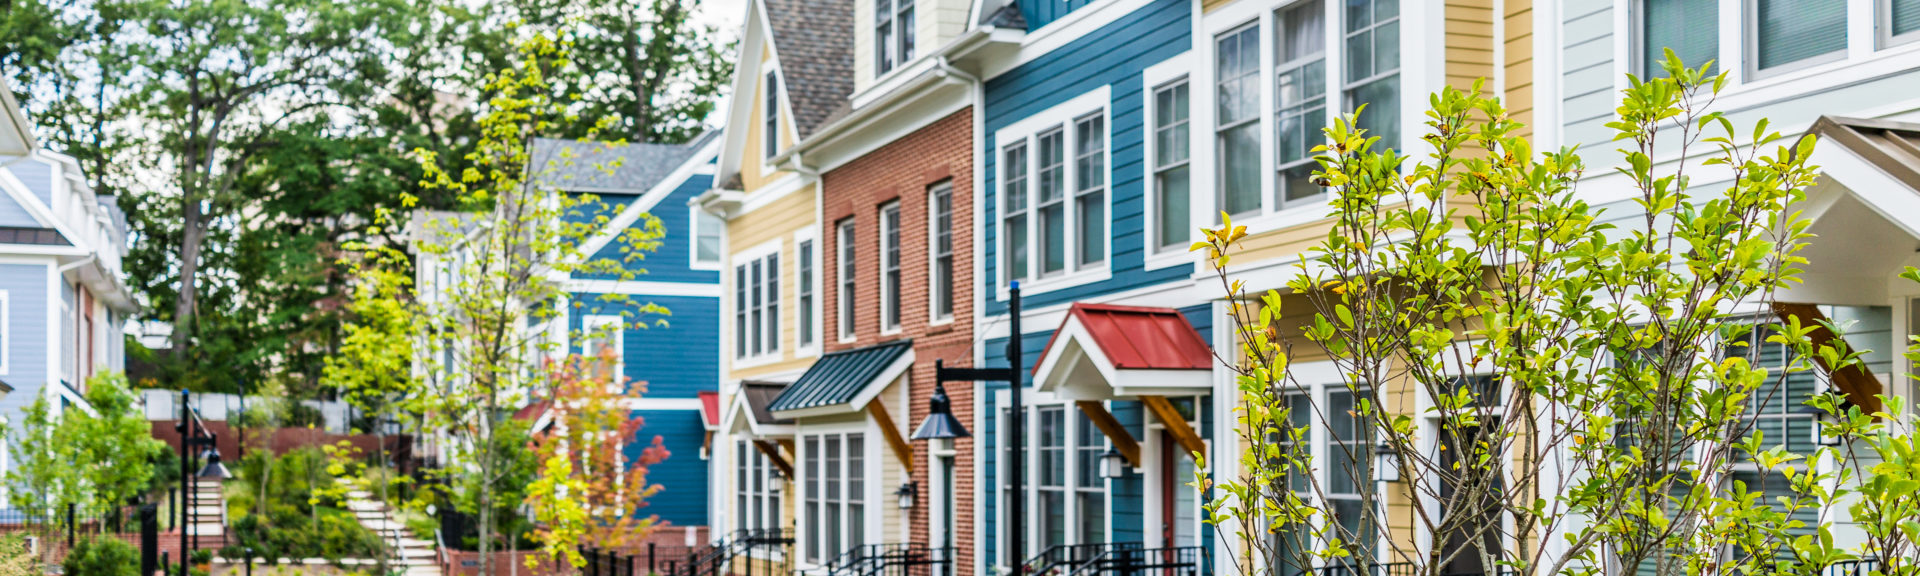 Colorful painted townhomes